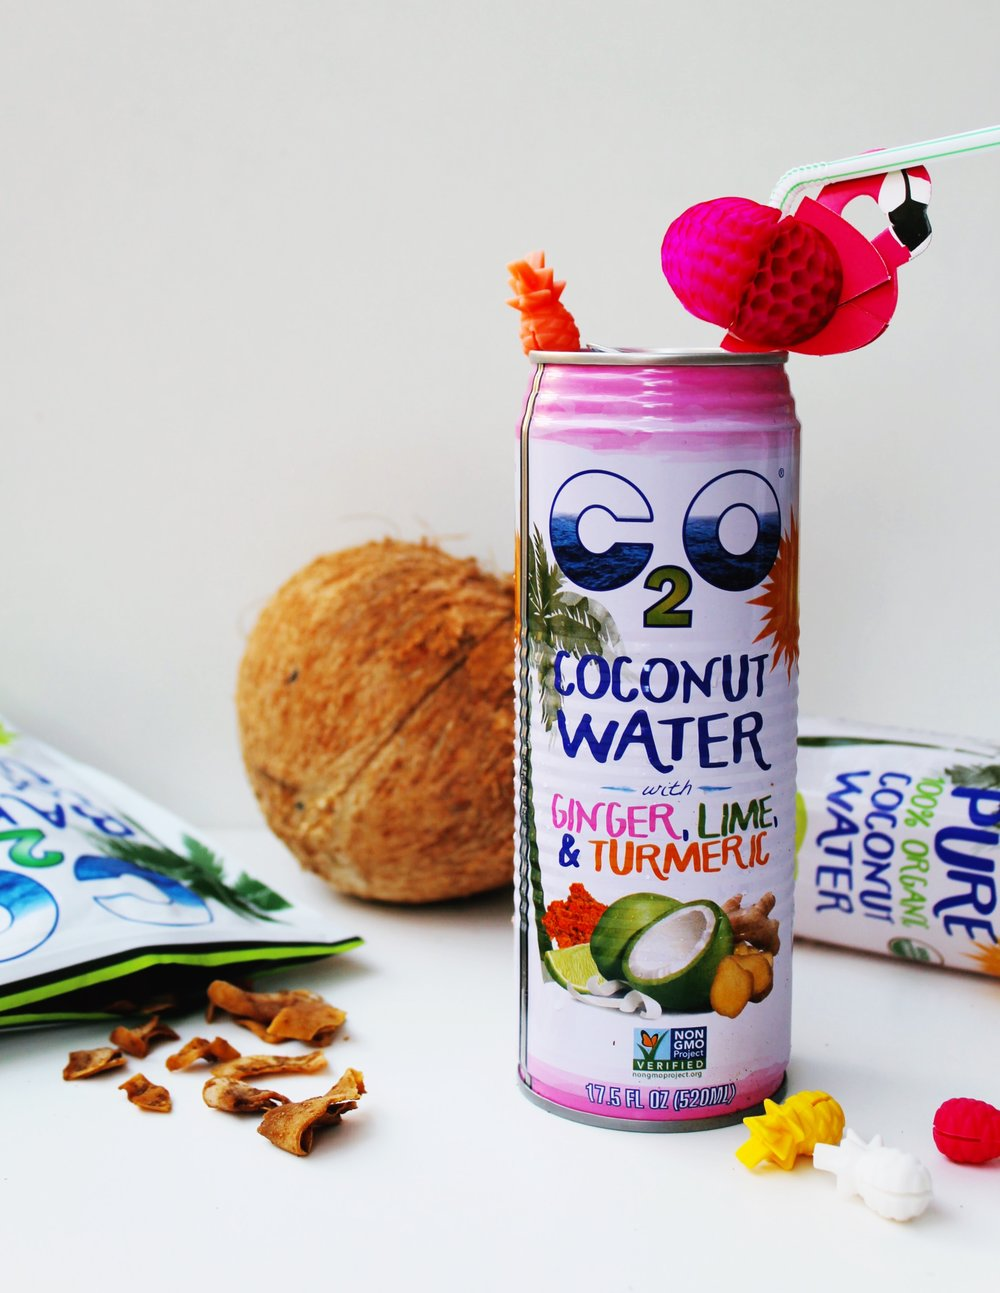 Coconut, Flamingo Straw, C2O Coconut Water with Ginger, Lime & Turmeric, Pineapple drink markers, Baked C2O coconut chips